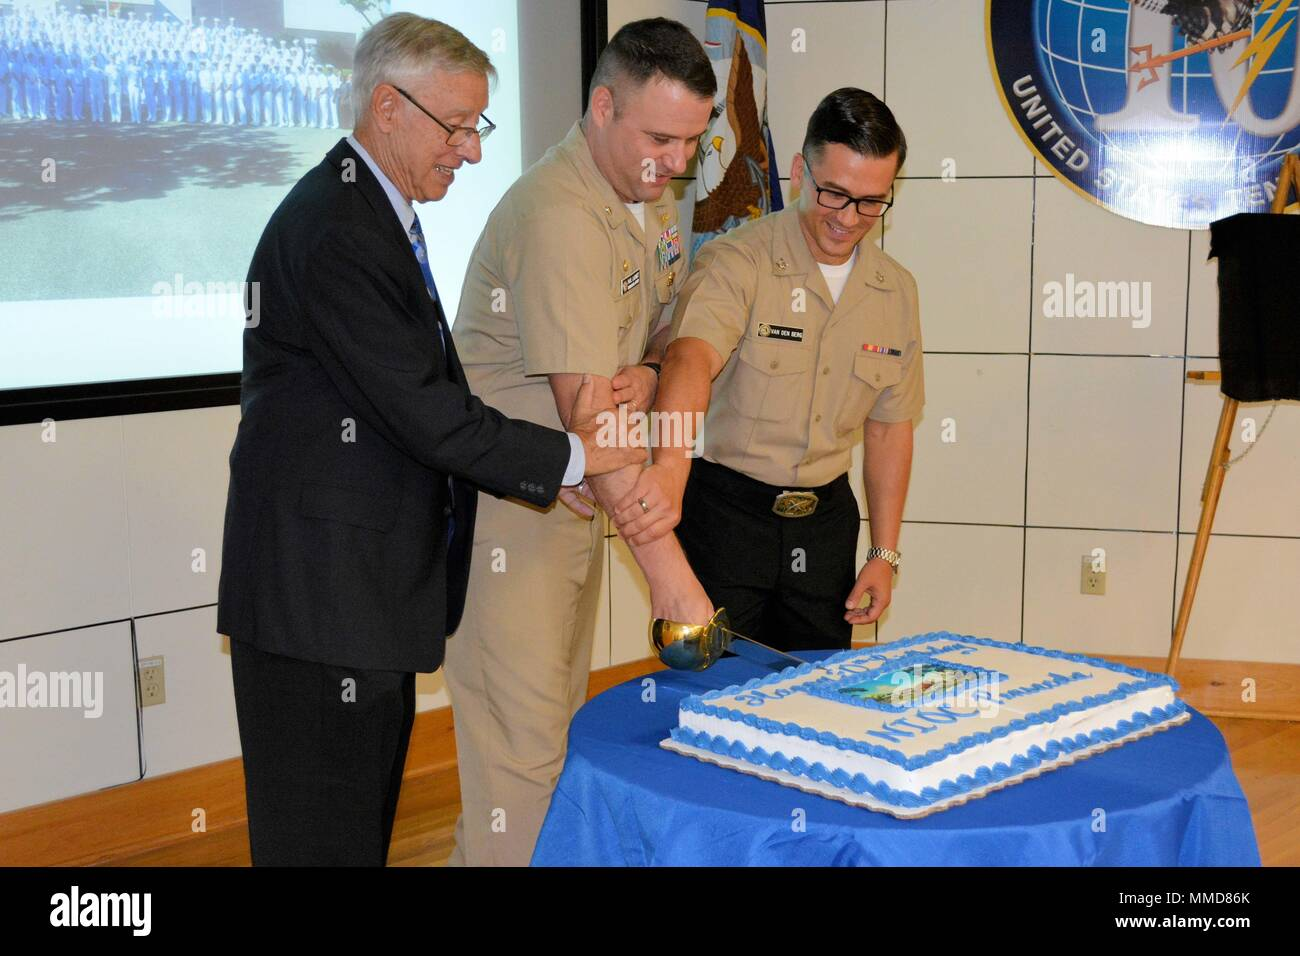 171006-N-AG811-024  PENSACOLA, Fla. (Oct. 6, 2017) – Retired Capt. Tom M. Pigoski, former officer in charge of Navy Security Group Detachment (NSGD) Pensacola (left), Cmdr. Paul D. Lashmet, commanding officer of Navy Information Operations Command (NIOC) Pensacola (center), and Cryptologic Technician (Networks) 3rd Class Jesse Van Den Berg cuts the cake for NIOC Pensacola's 30th birthday ceremony. NIOC Pensacola is a subordinate command of U.S. Fleet Cyber Command and comprises Task Group 103 of the U.S. 10th Fleet. (U.S. Navy photo by Cryptologic Technician (Networks) 1st Class Mark Jansson/R - Stock Image